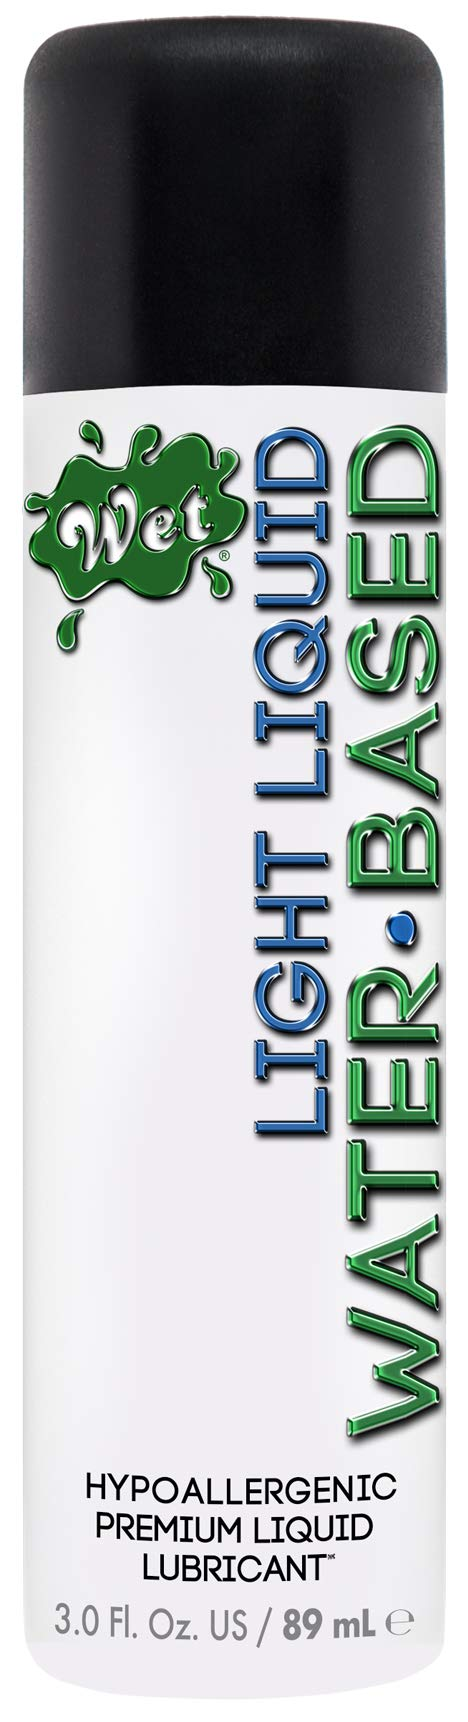 Wet Light Water Based Liquid Personal Lubricant, 3.0 Ounce